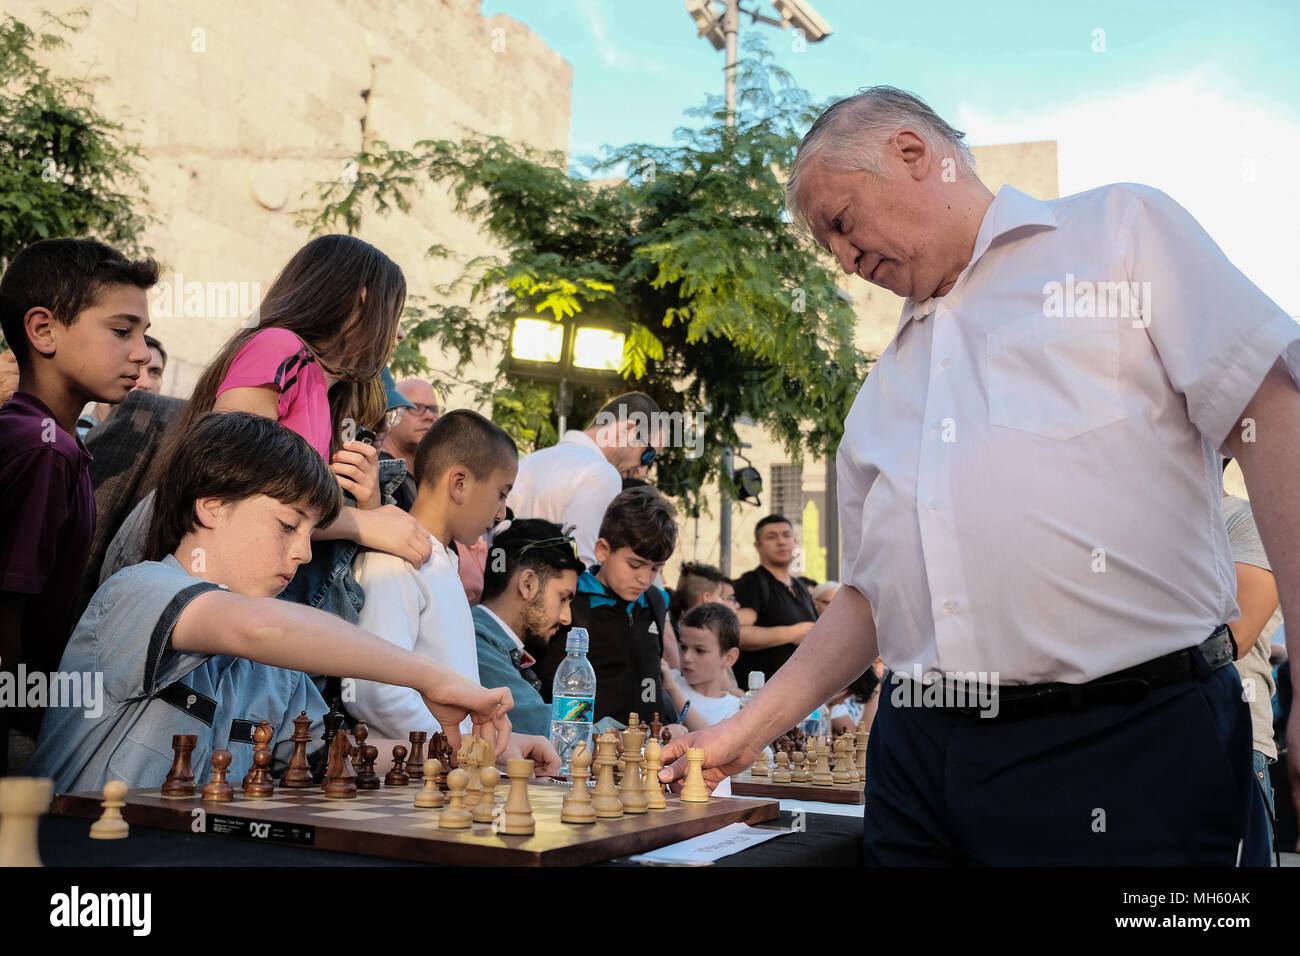 Russian Chess Player Stock Photos Russian Chess Player Stock